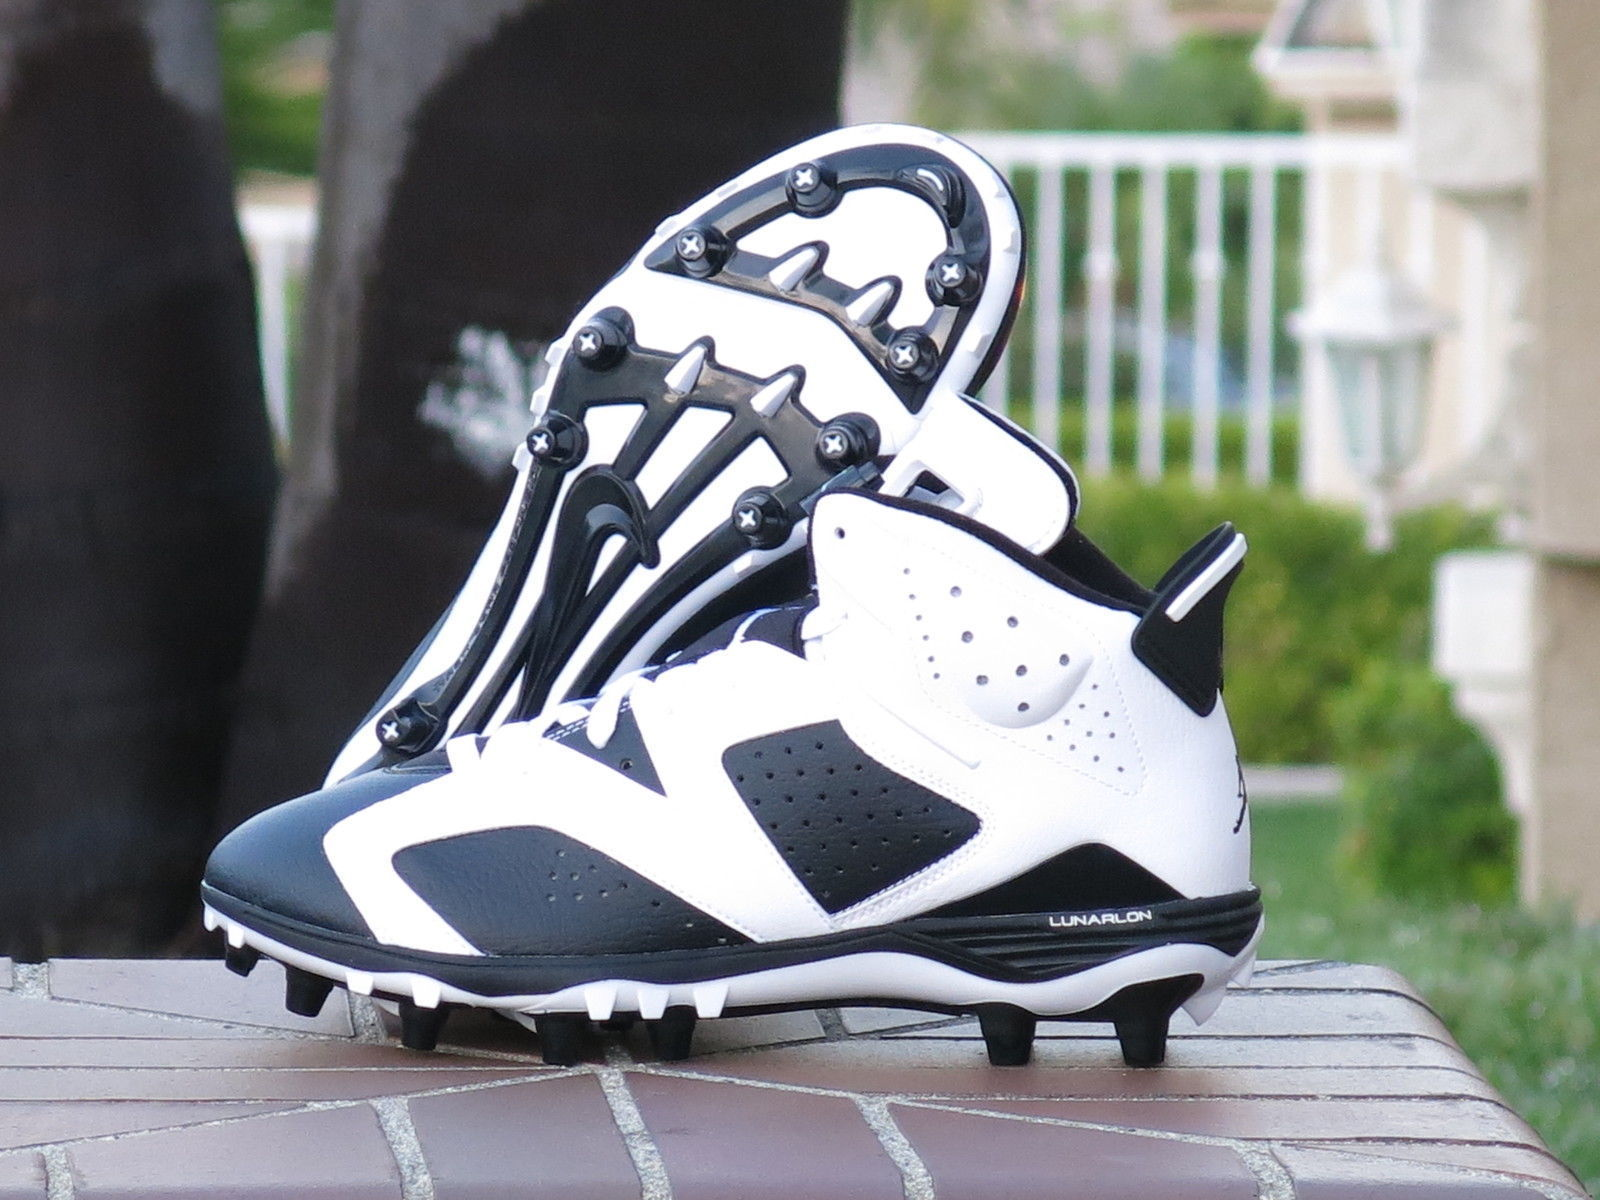 7cbfc1734a8f ... NIKE AIR JORDAN 6 TD RETRO FOOTBALL CLEATS OREO BLACK WHITE NEW  (645419-110